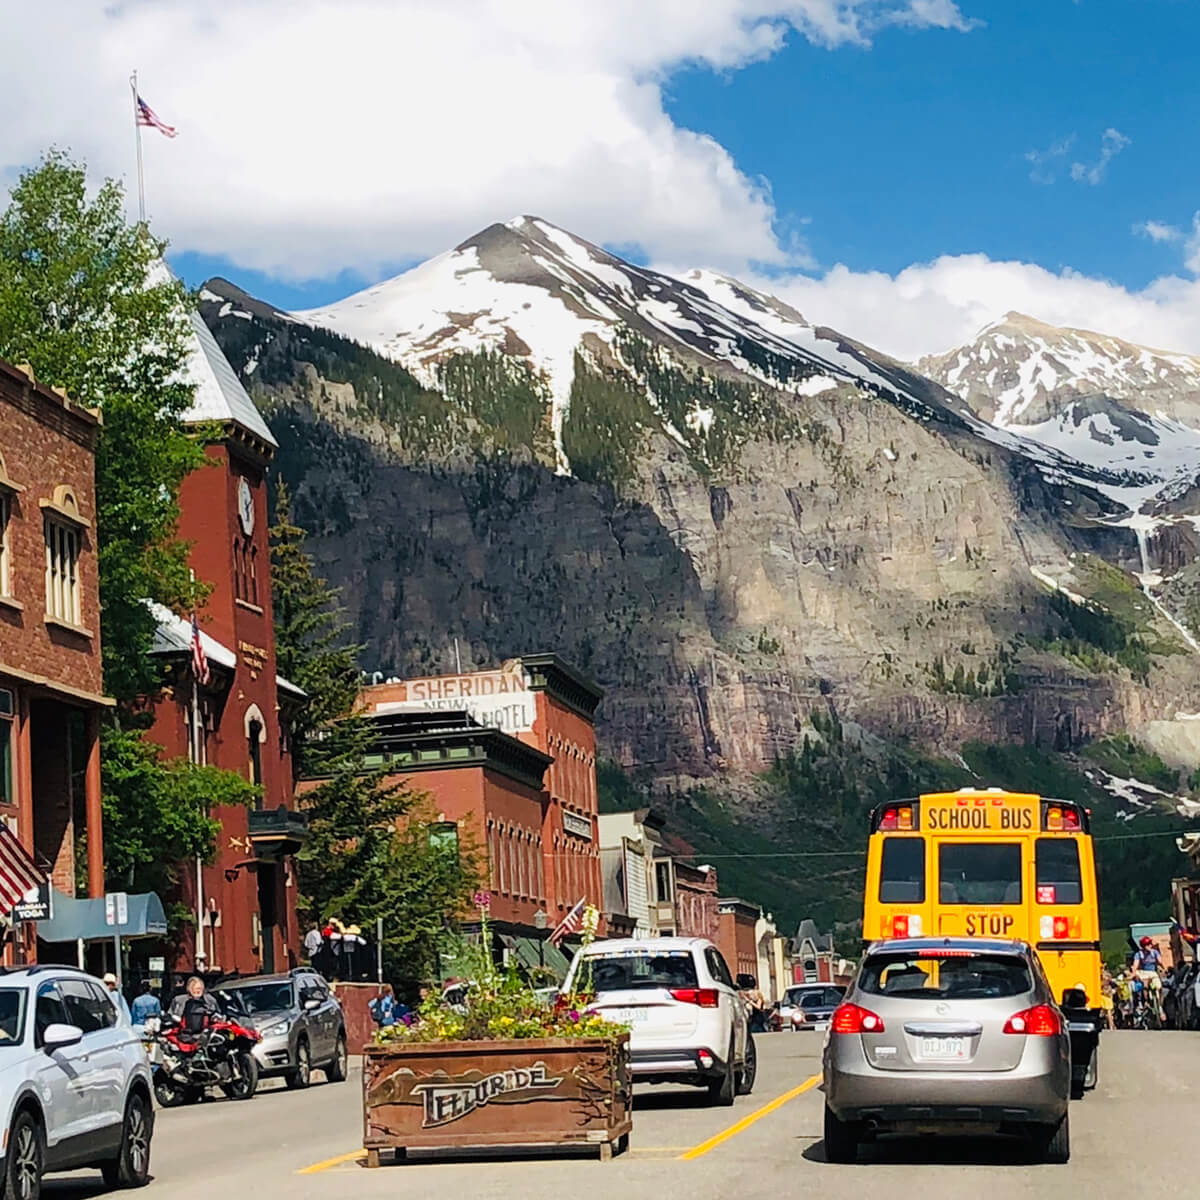 telluride main street, mountains, cars, bus